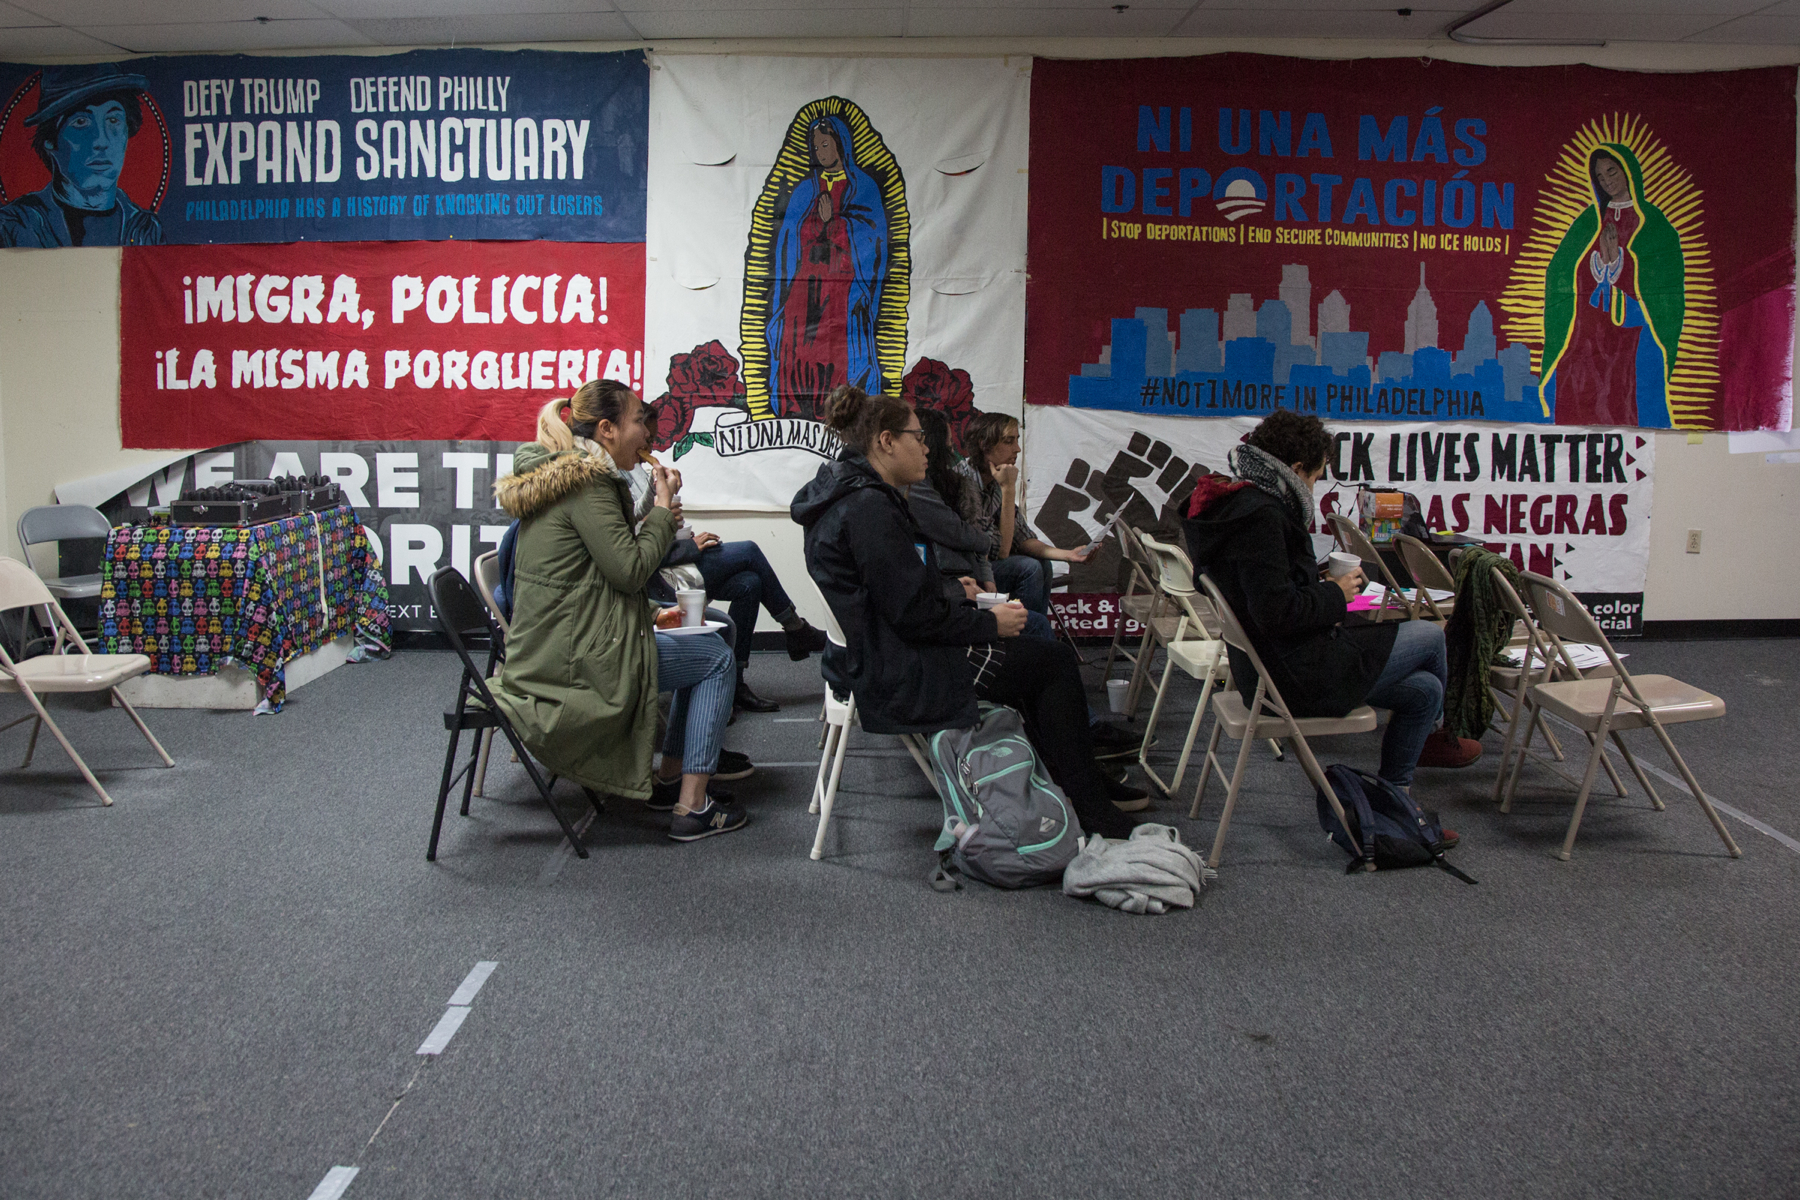 People in winter coats sit on folding chairs against a background of colorful posters in Spanish language